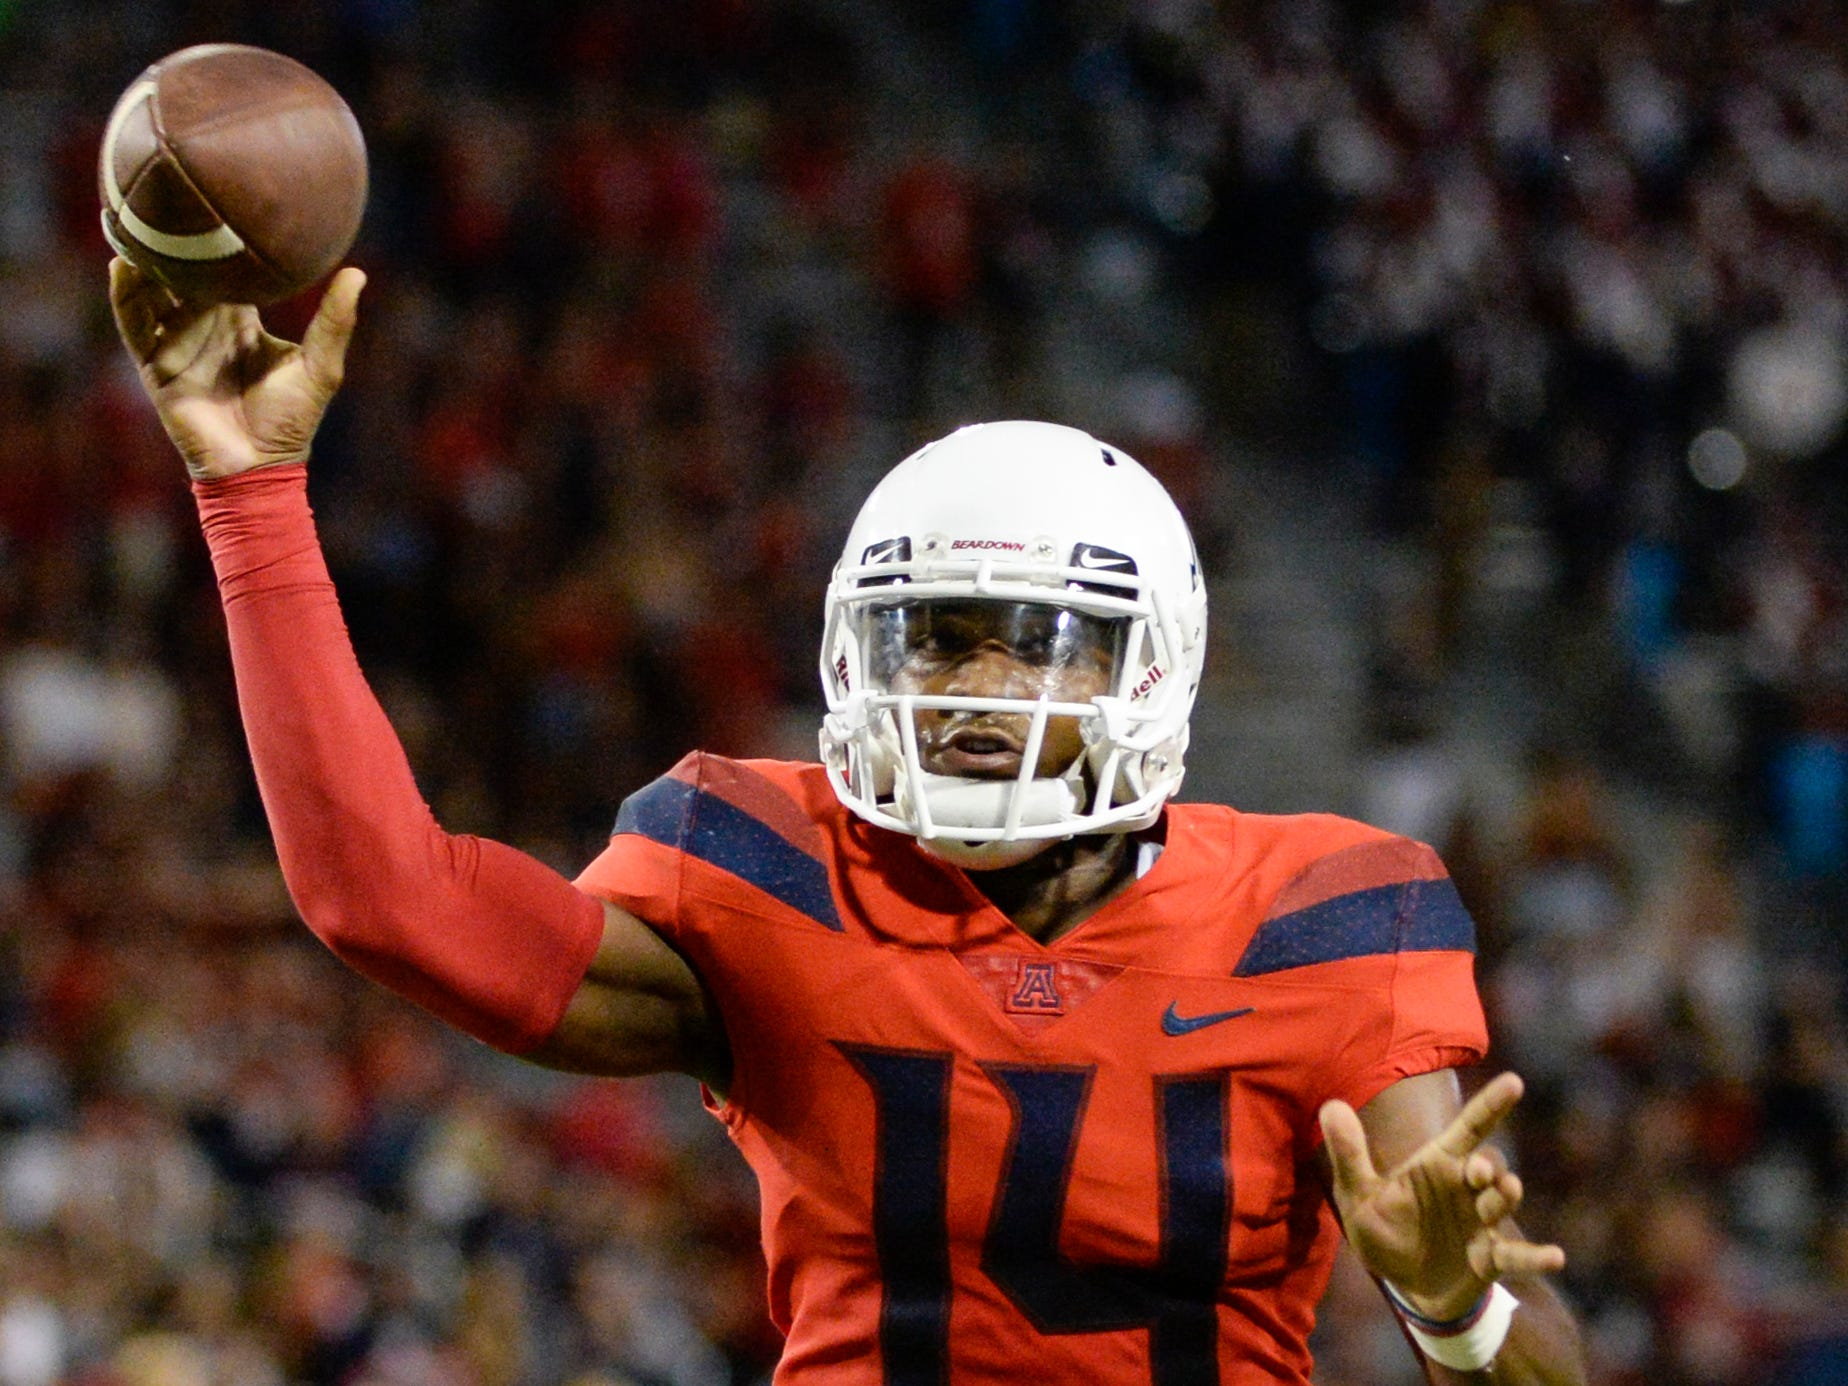 Sep 1, 2018; Tucson, AZ, USA; Arizona Wildcats quarterback Khalil Tate (14) passes the ball against the Brigham Young Cougars during the first half at Arizona Stadium.